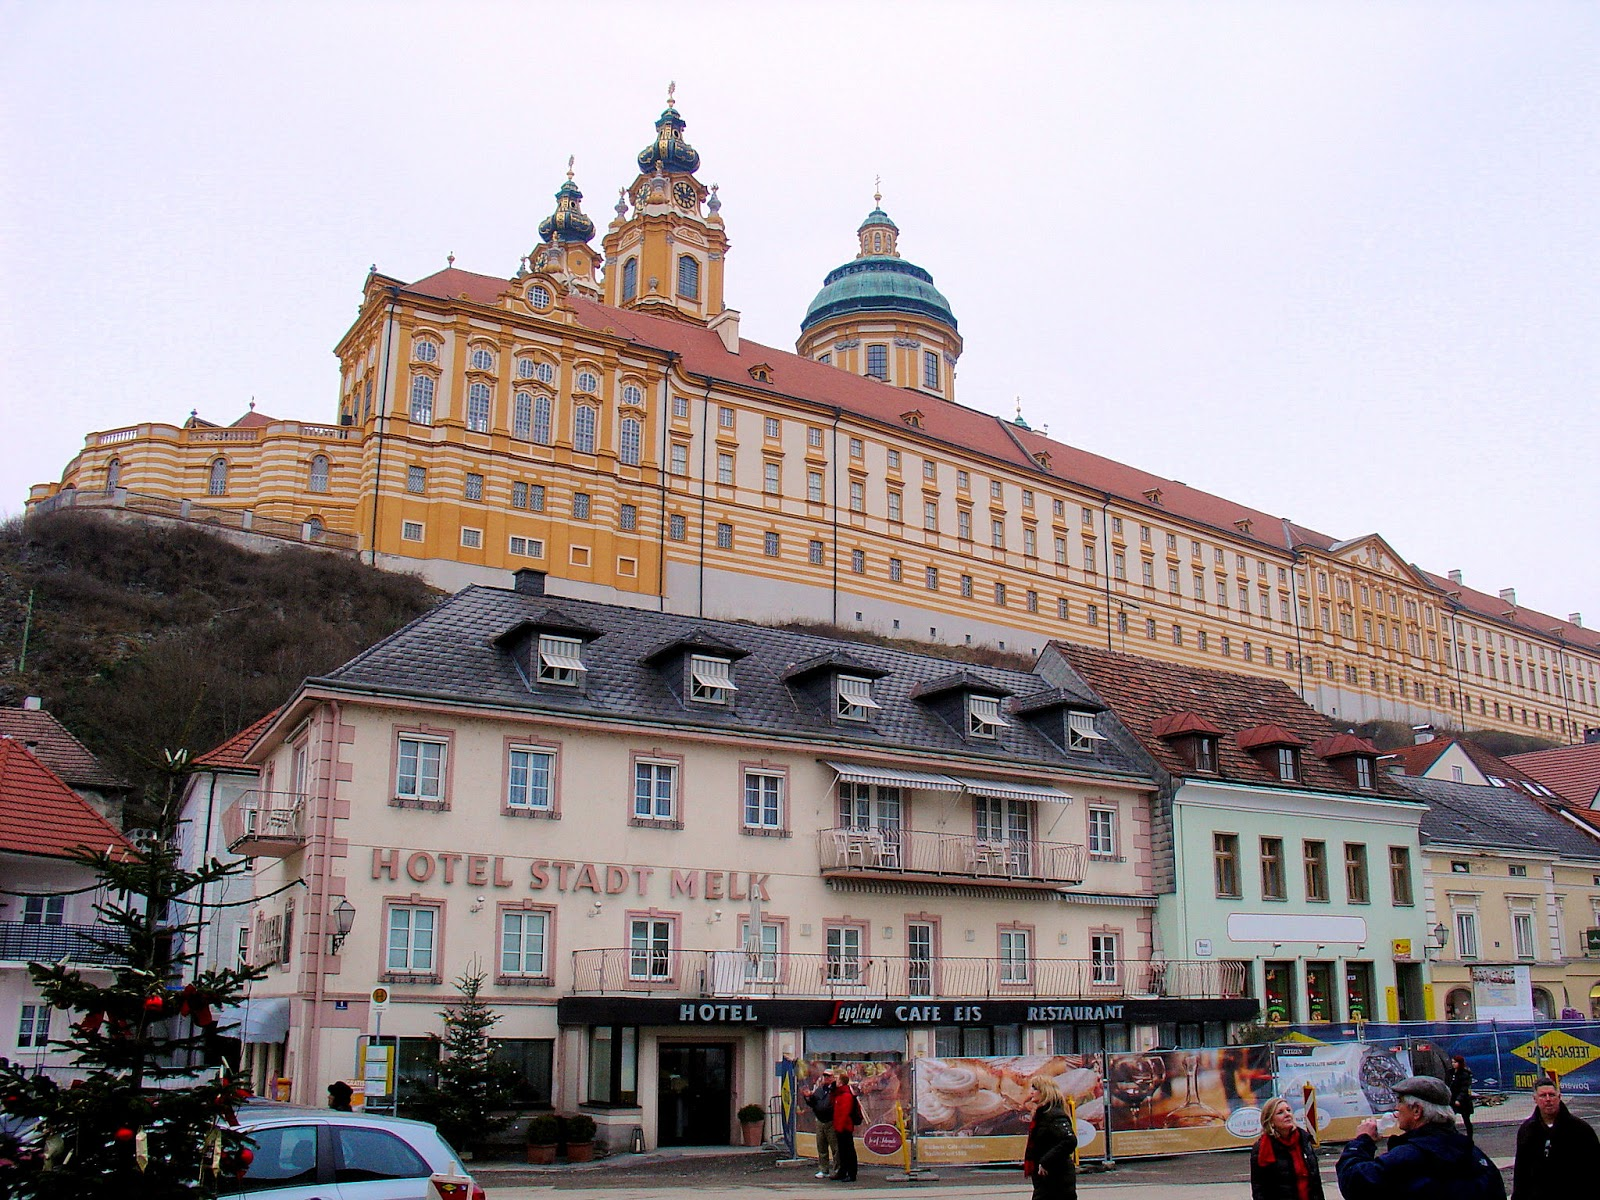 The imposing Melk Abbey looms over the tiny village of Melk below.